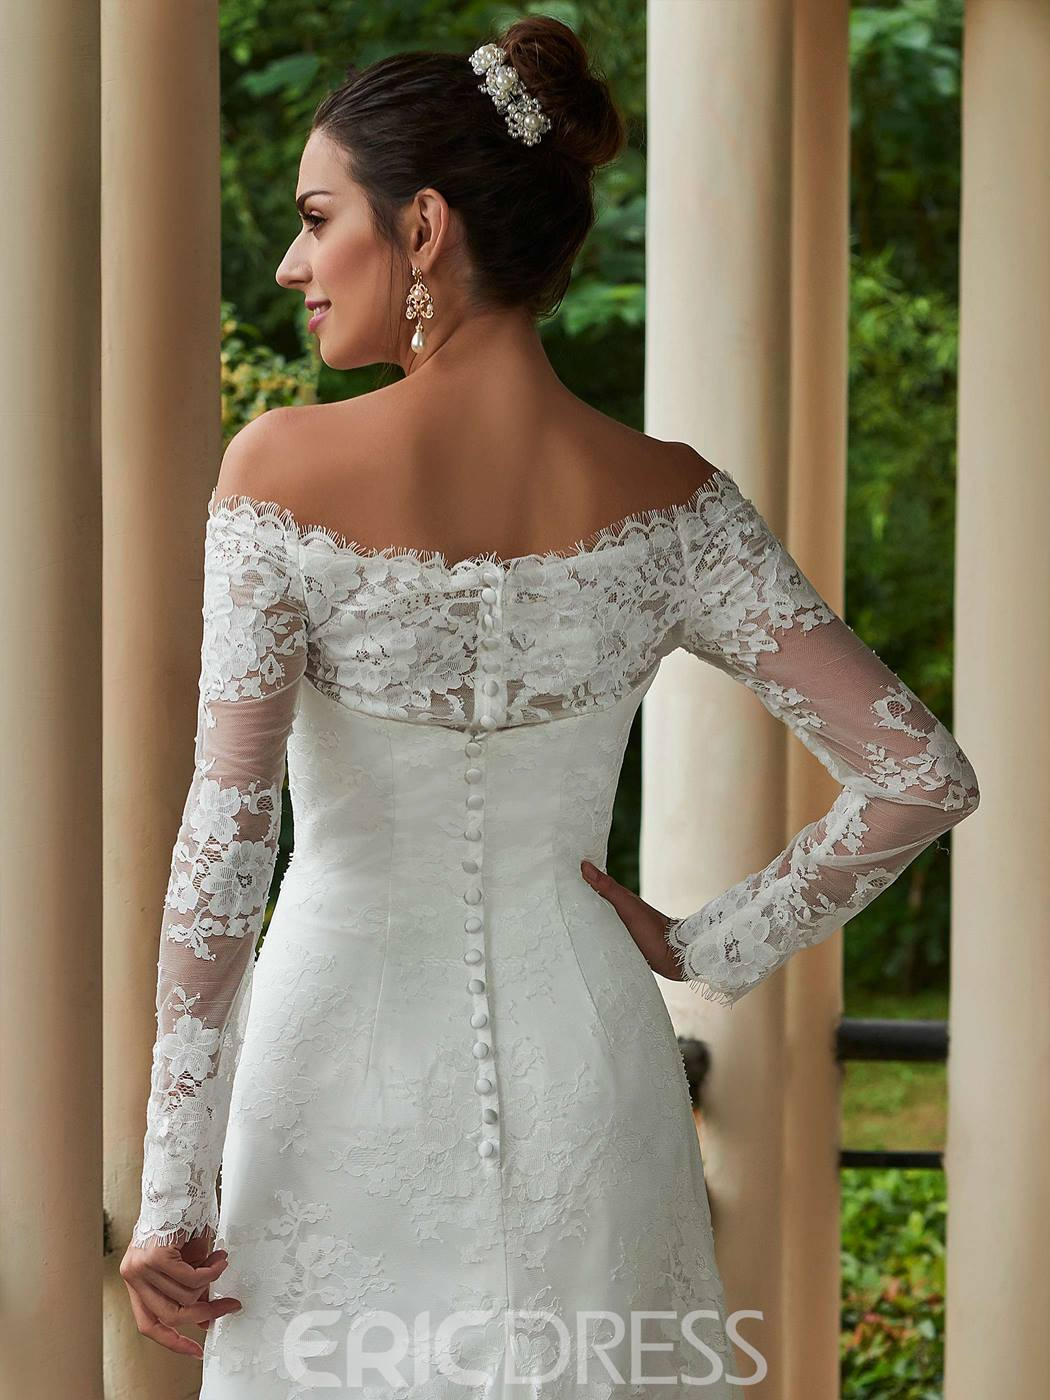 Ericdress Elegant Off The Shoulder A Line Long Sleeves Lace Wedding Dress